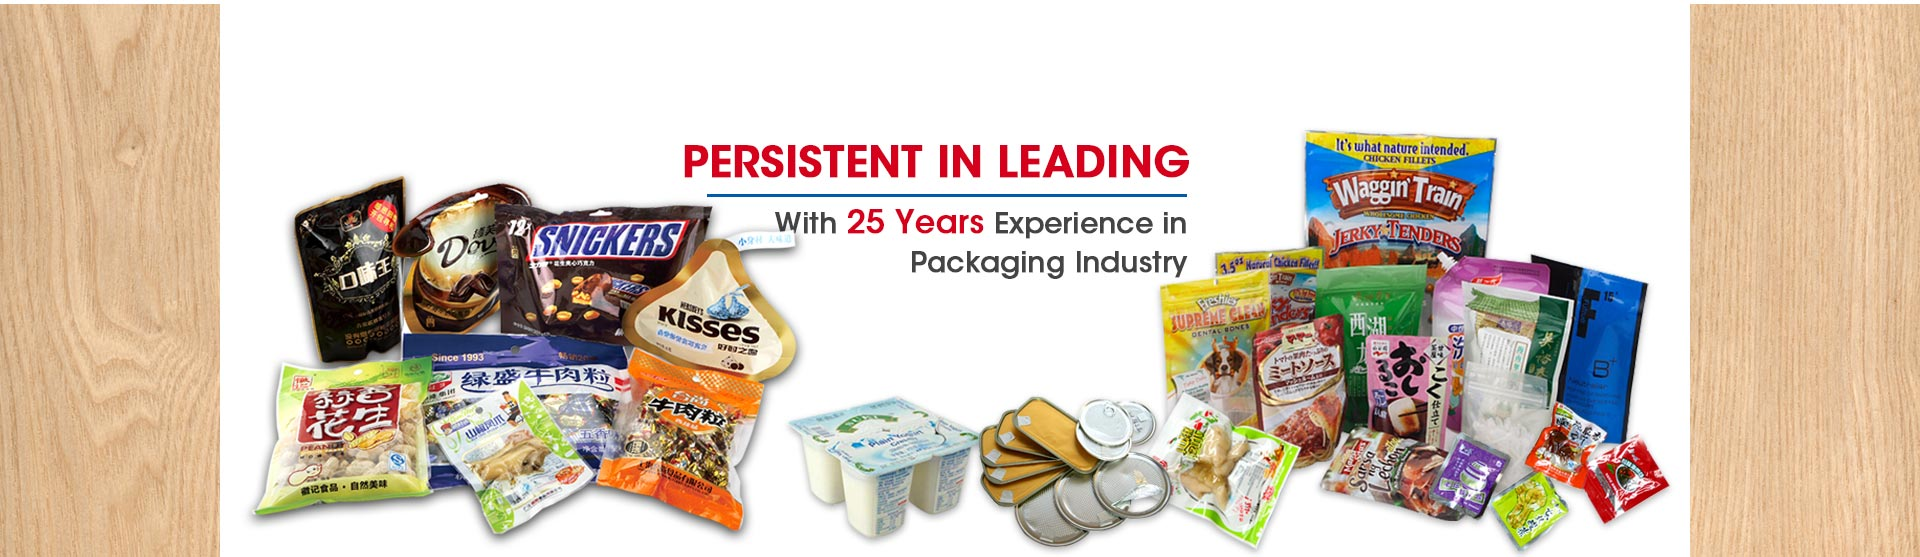 Automatic Vacuum Packaging Machine, EOE Seamer, Cup Fill Seal Machine, Flow Wrapping Machine|About Us